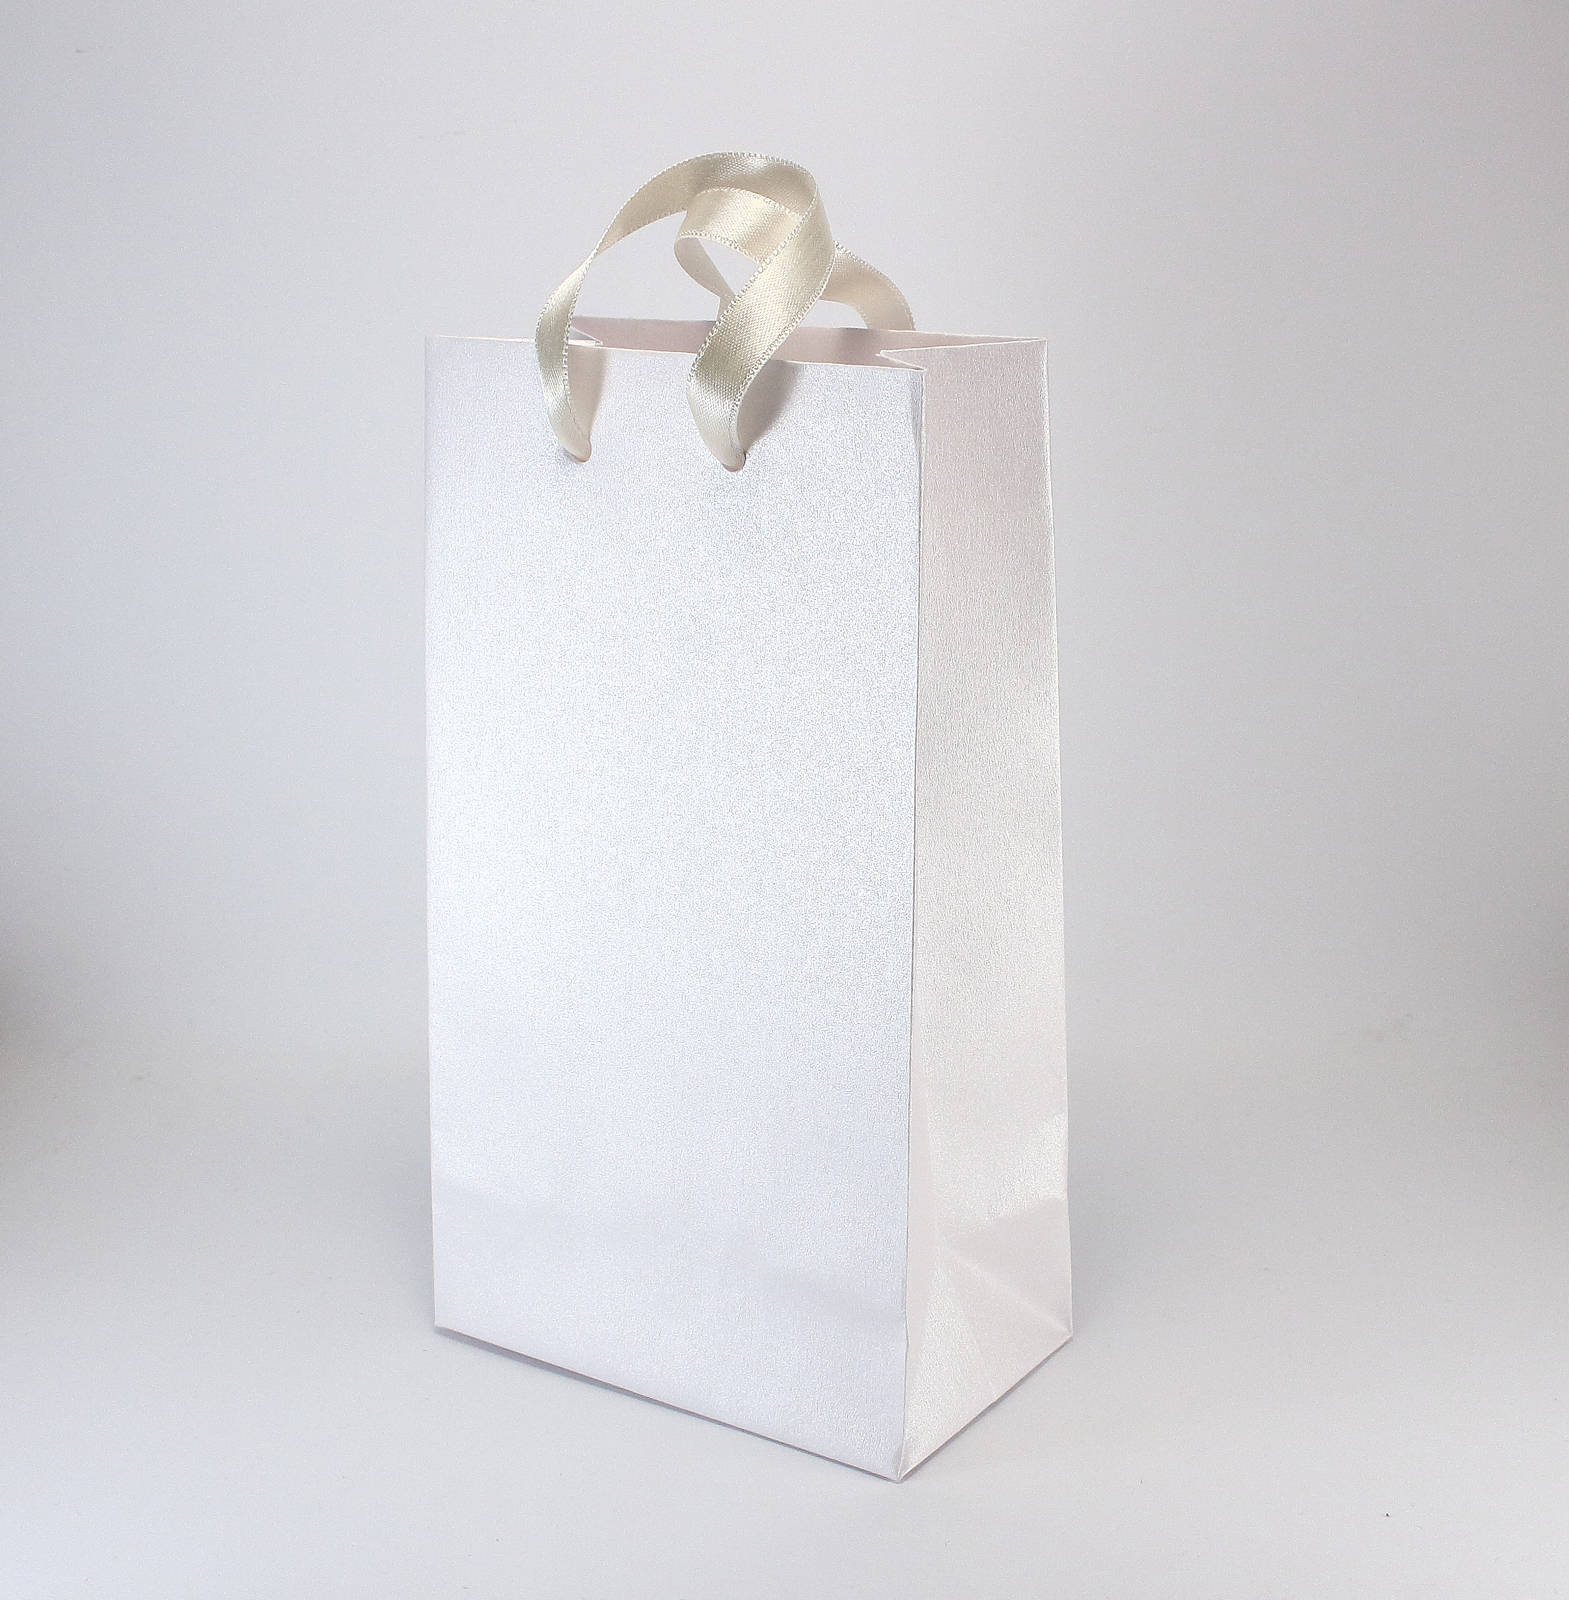 50 SMALL White Paper Bags for Wedding Guests - Luxury Metallic Paper ...